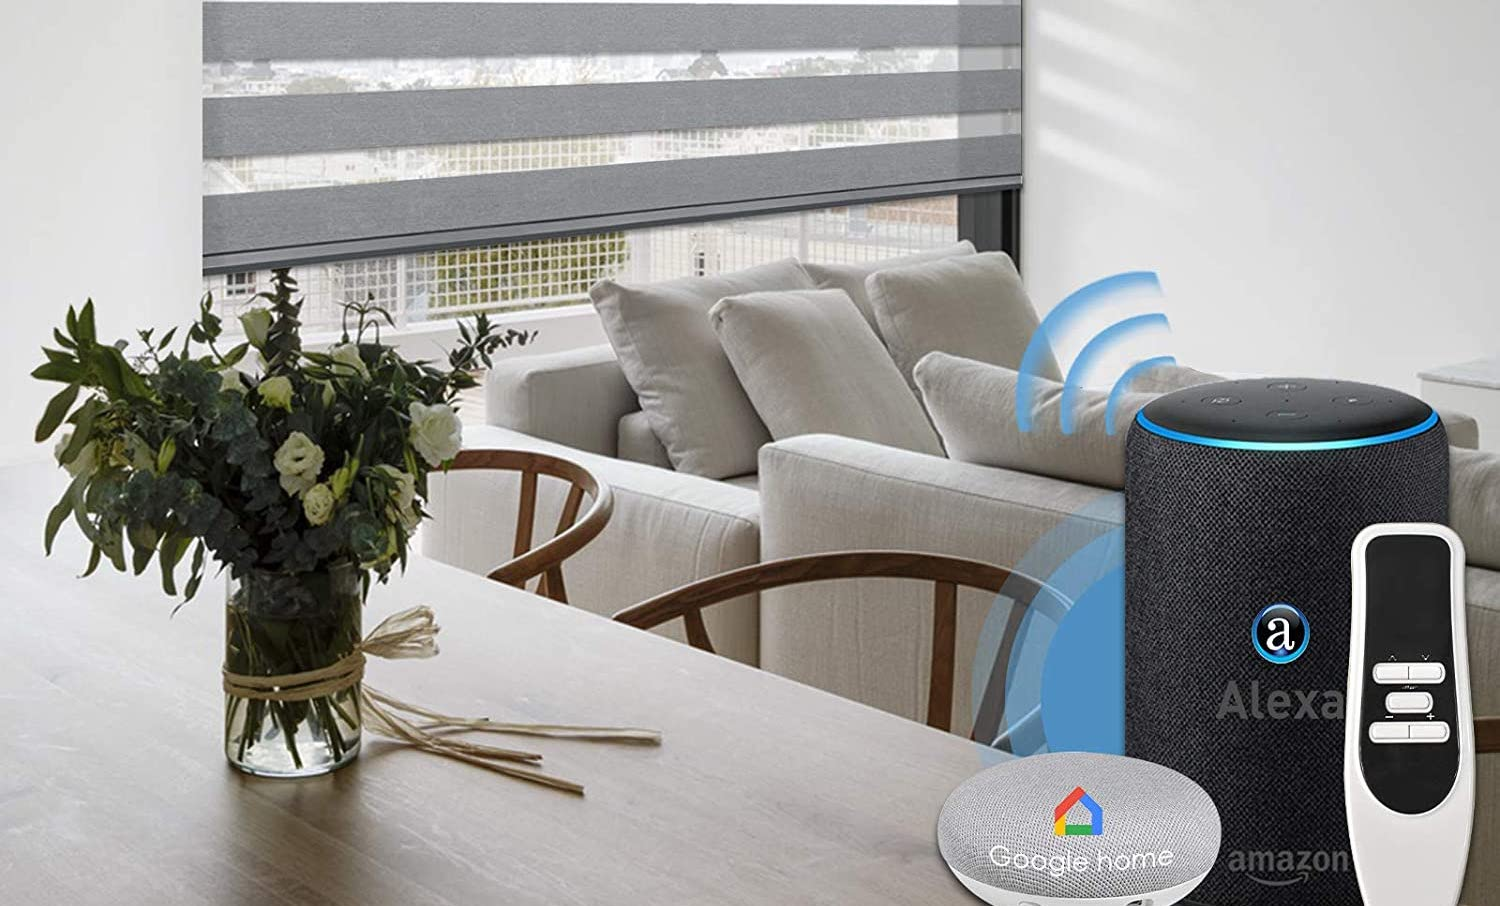 How To Pair Smart Blinds With Alexa and Google Home